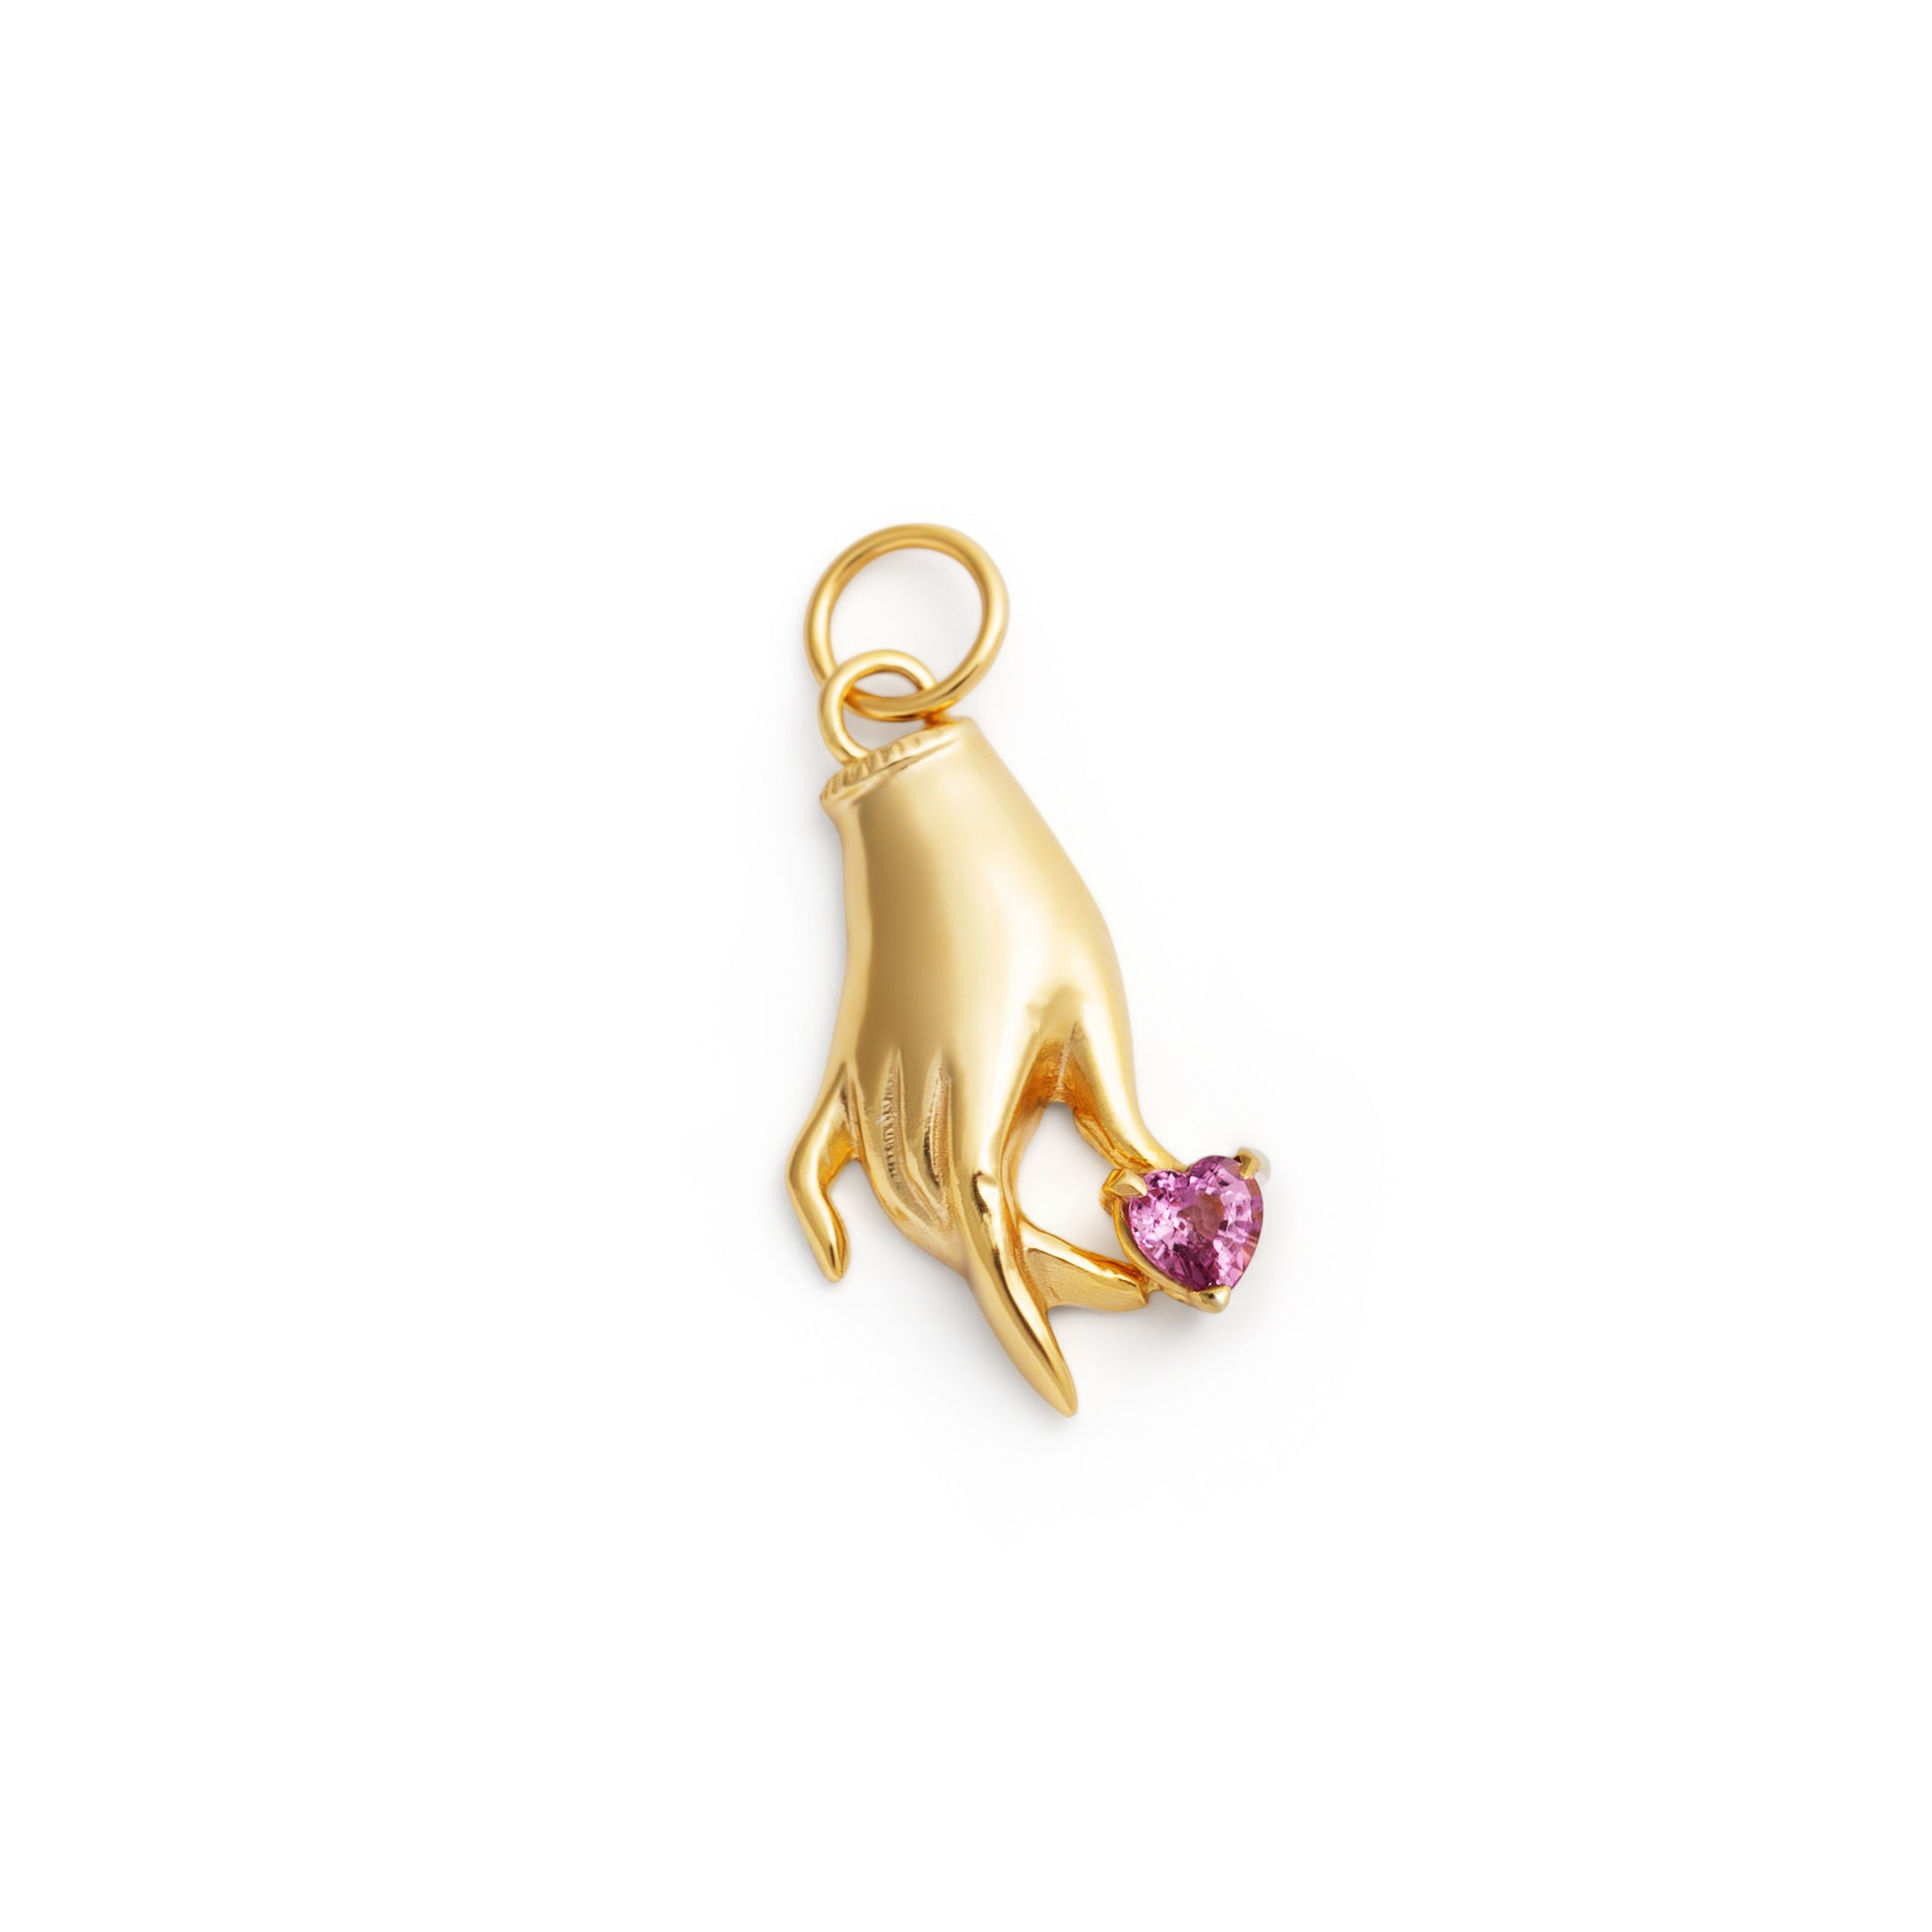 The F&B Pink Sapphire Heart Hand Charm